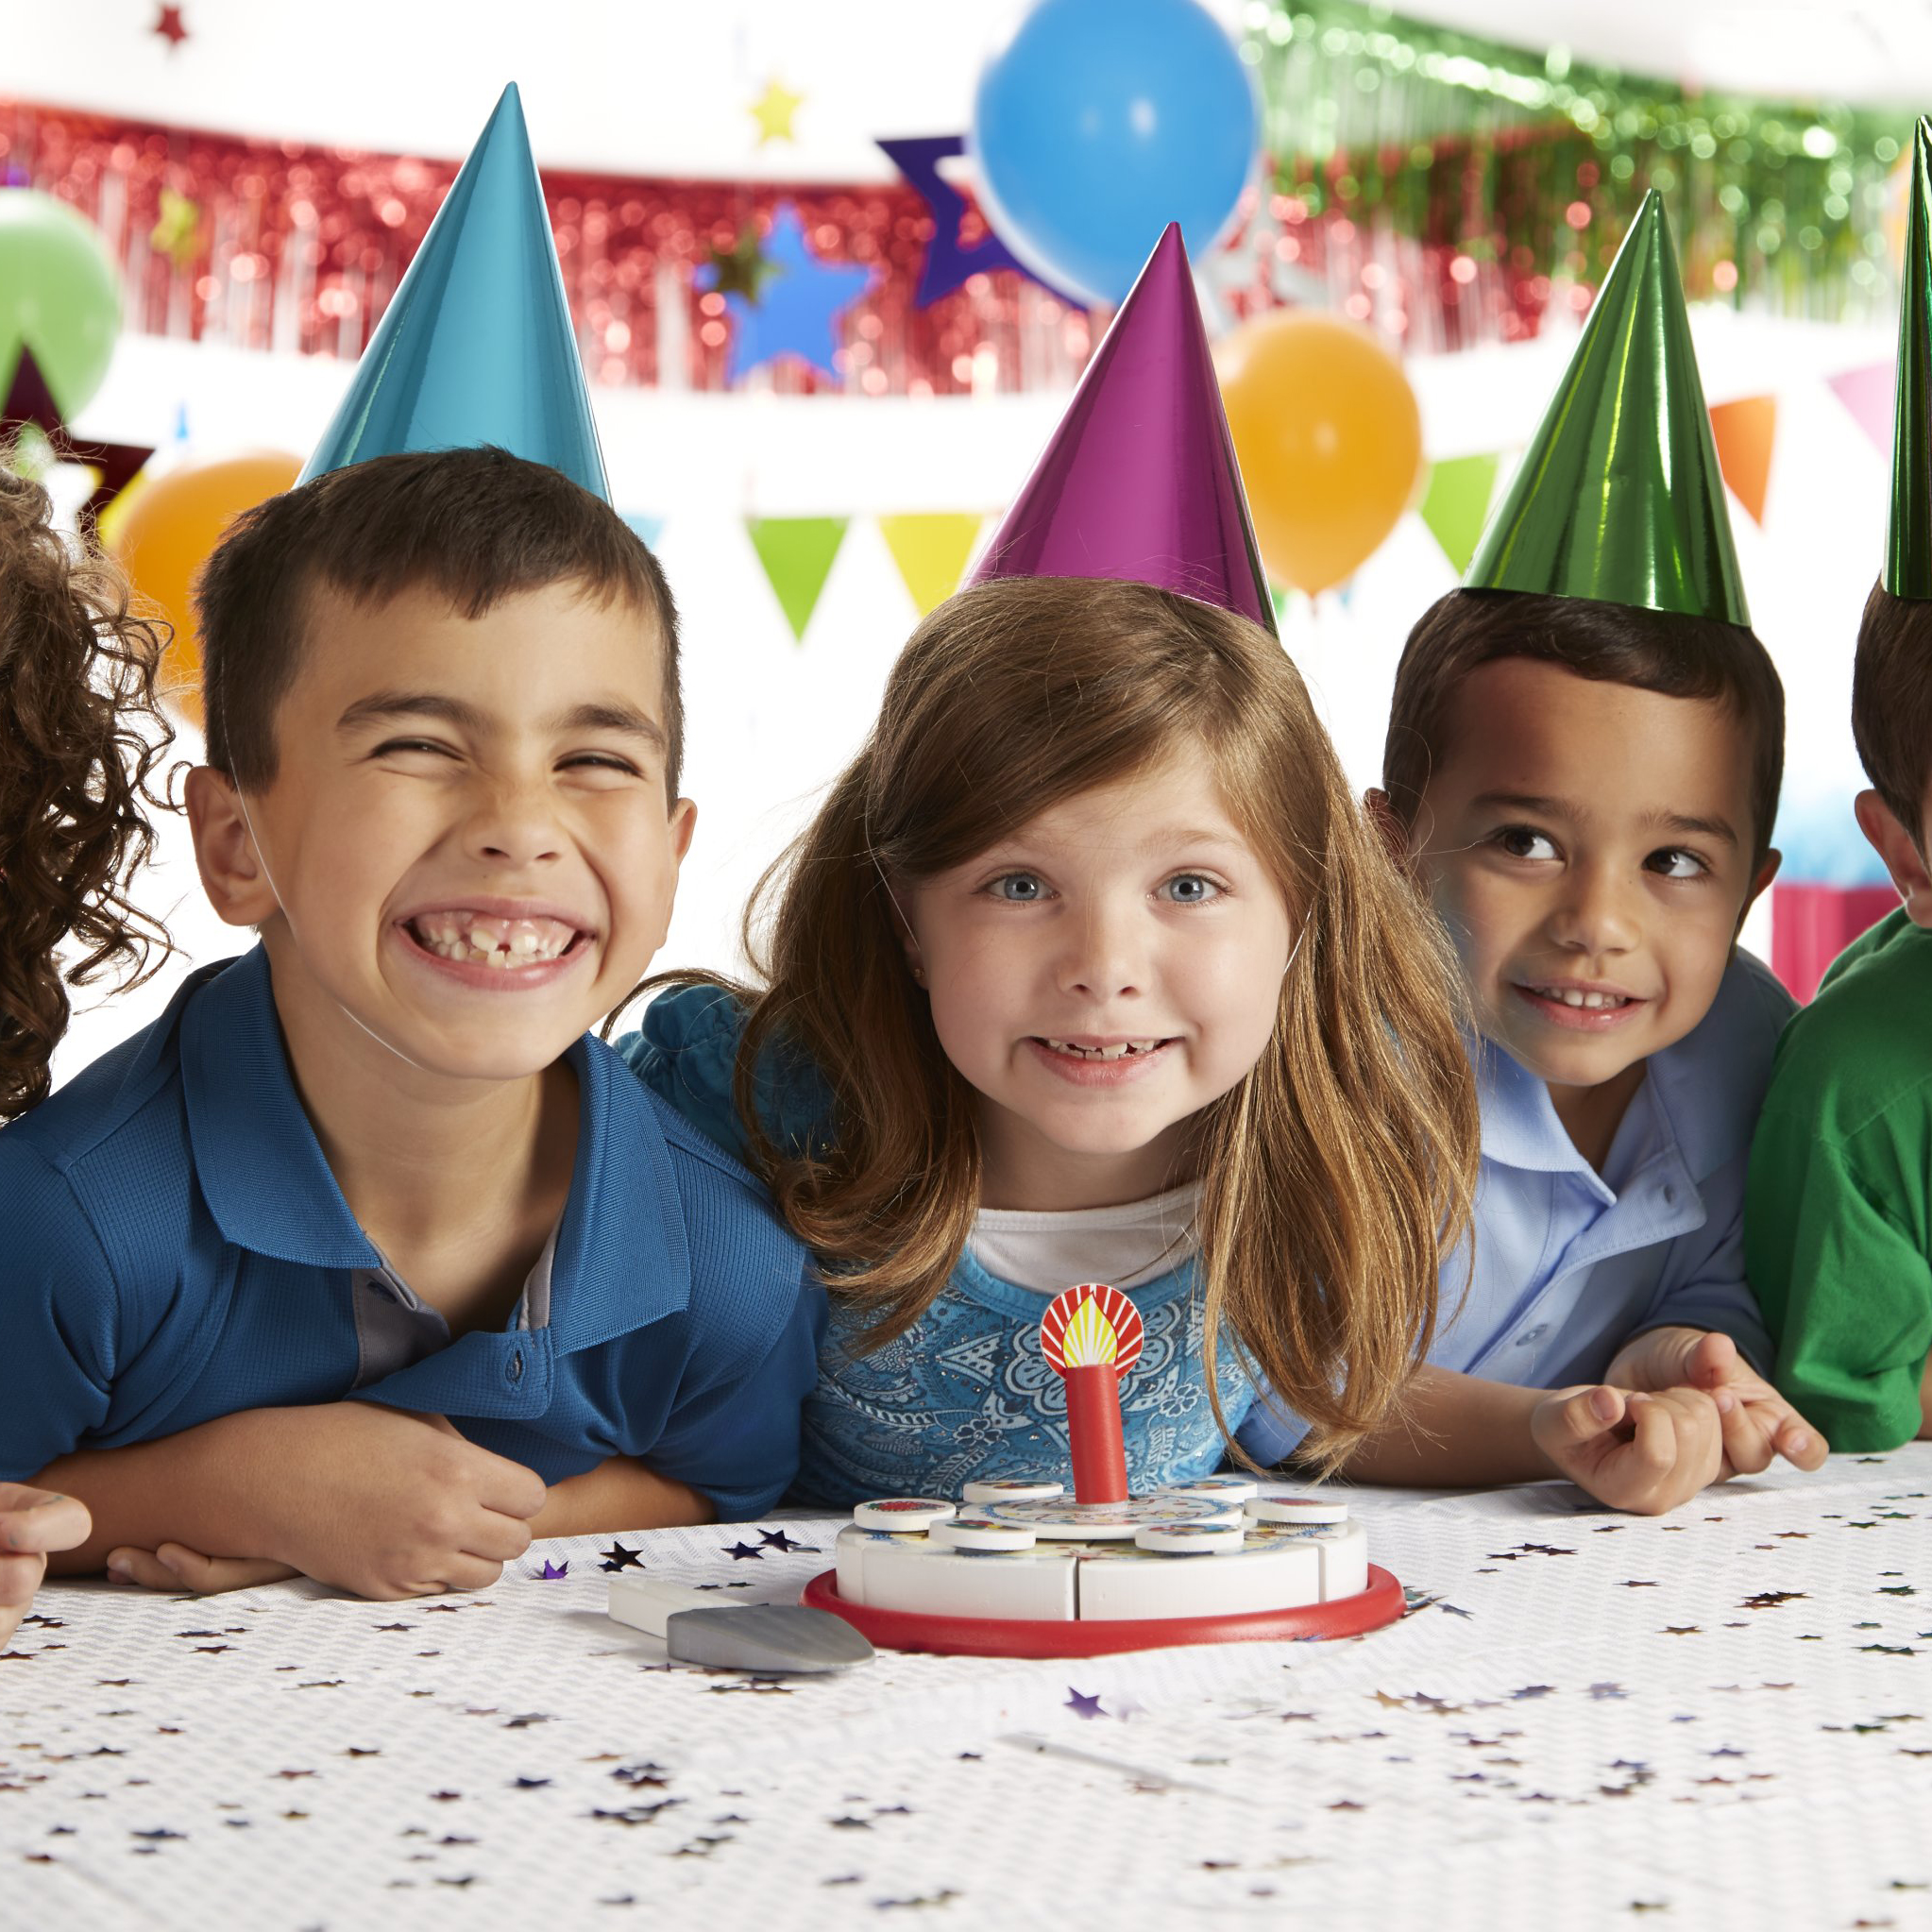 6 Tips for Buying Birthday Gifts for Kids